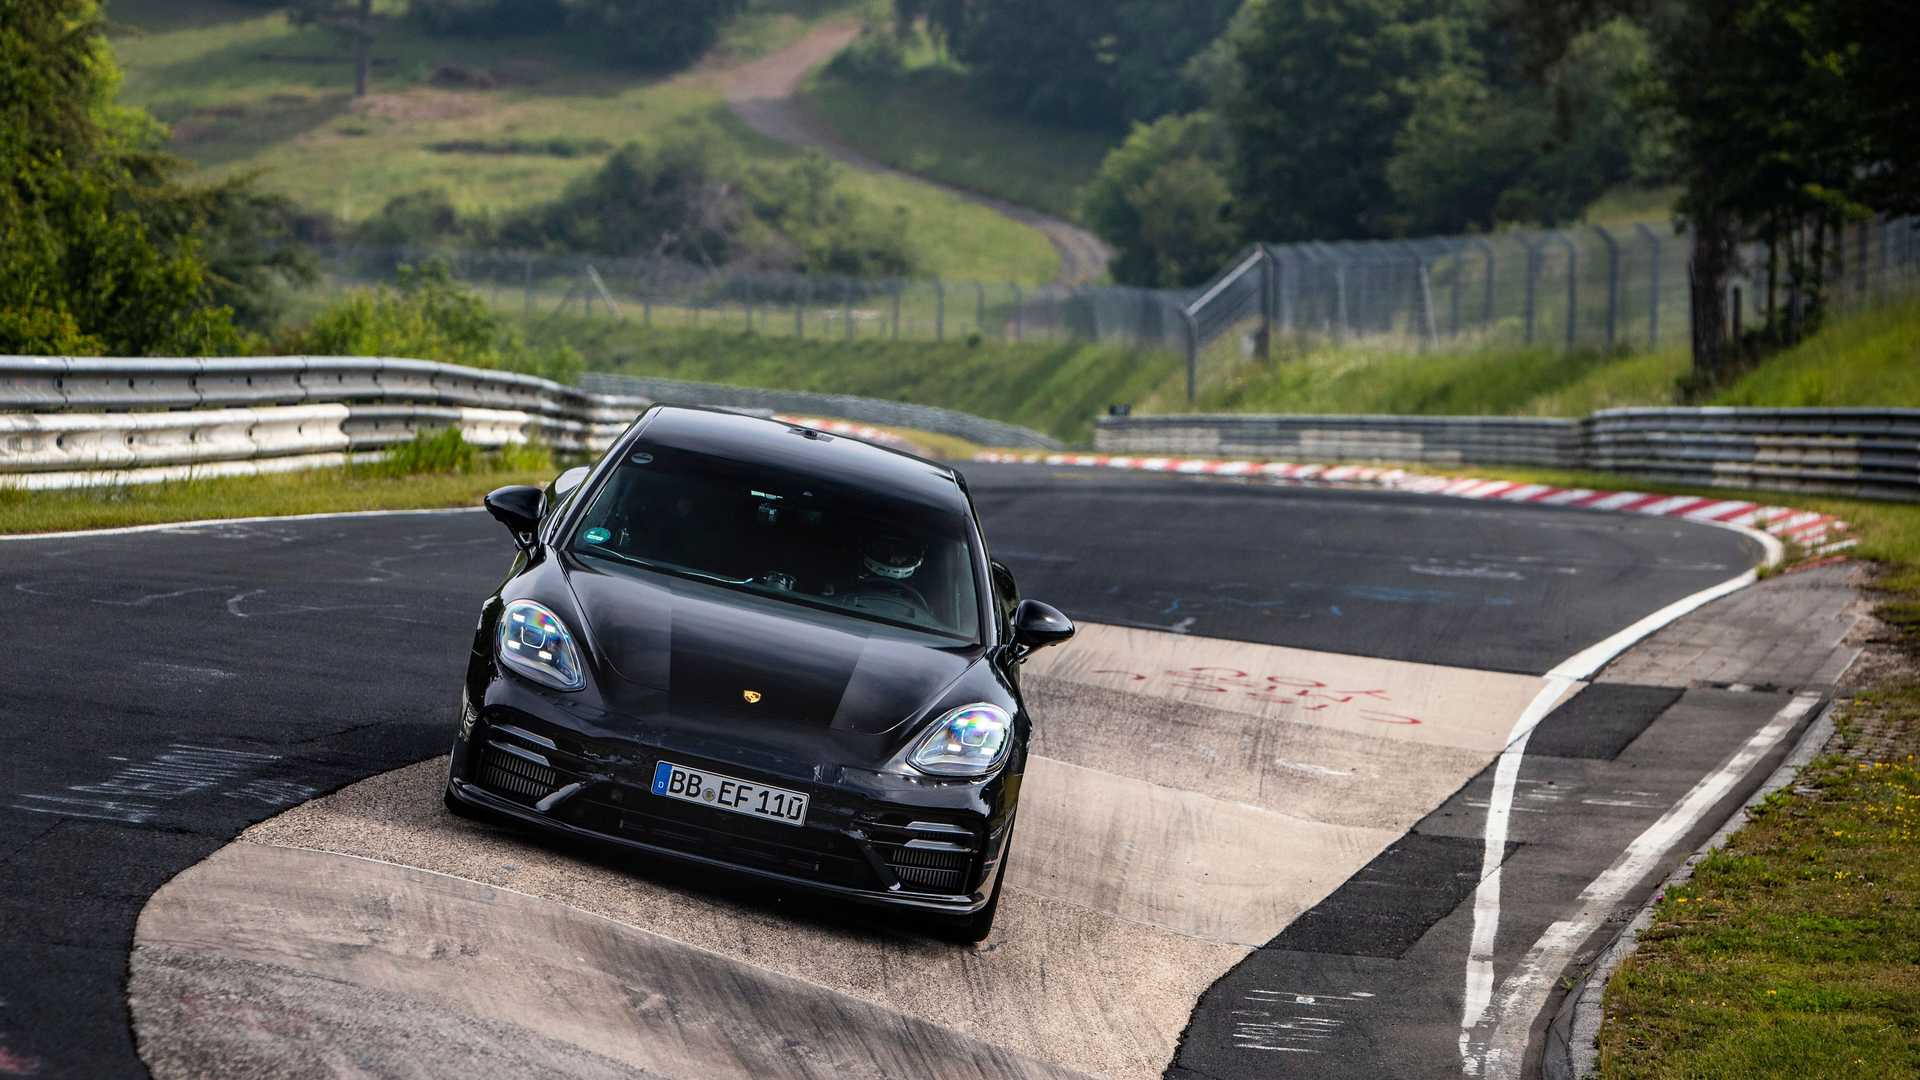 2021-porsche-panamera-sets-fastest-four-door-porsche-record-at-the-nurburgring-3